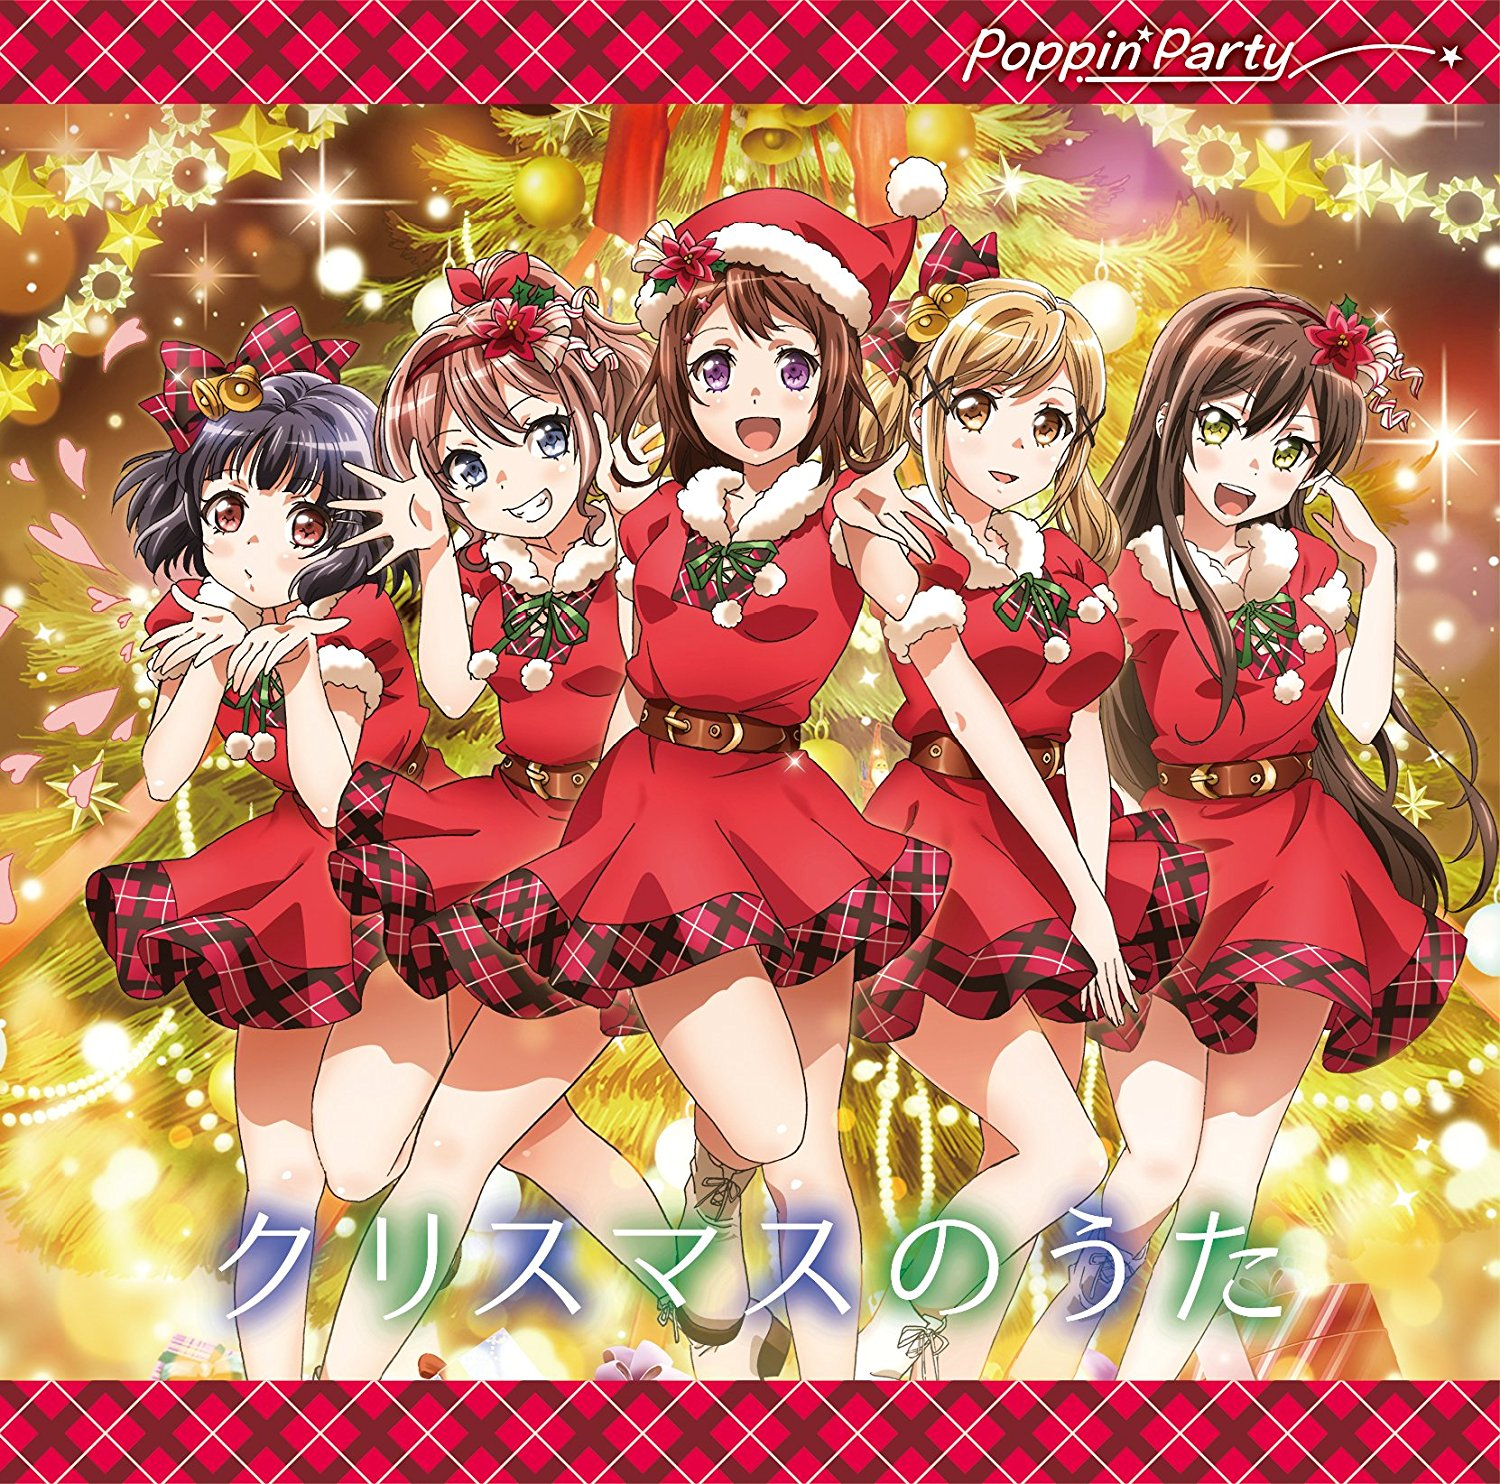 BanG Dream!: Poppin'Party – Christmas no Uta